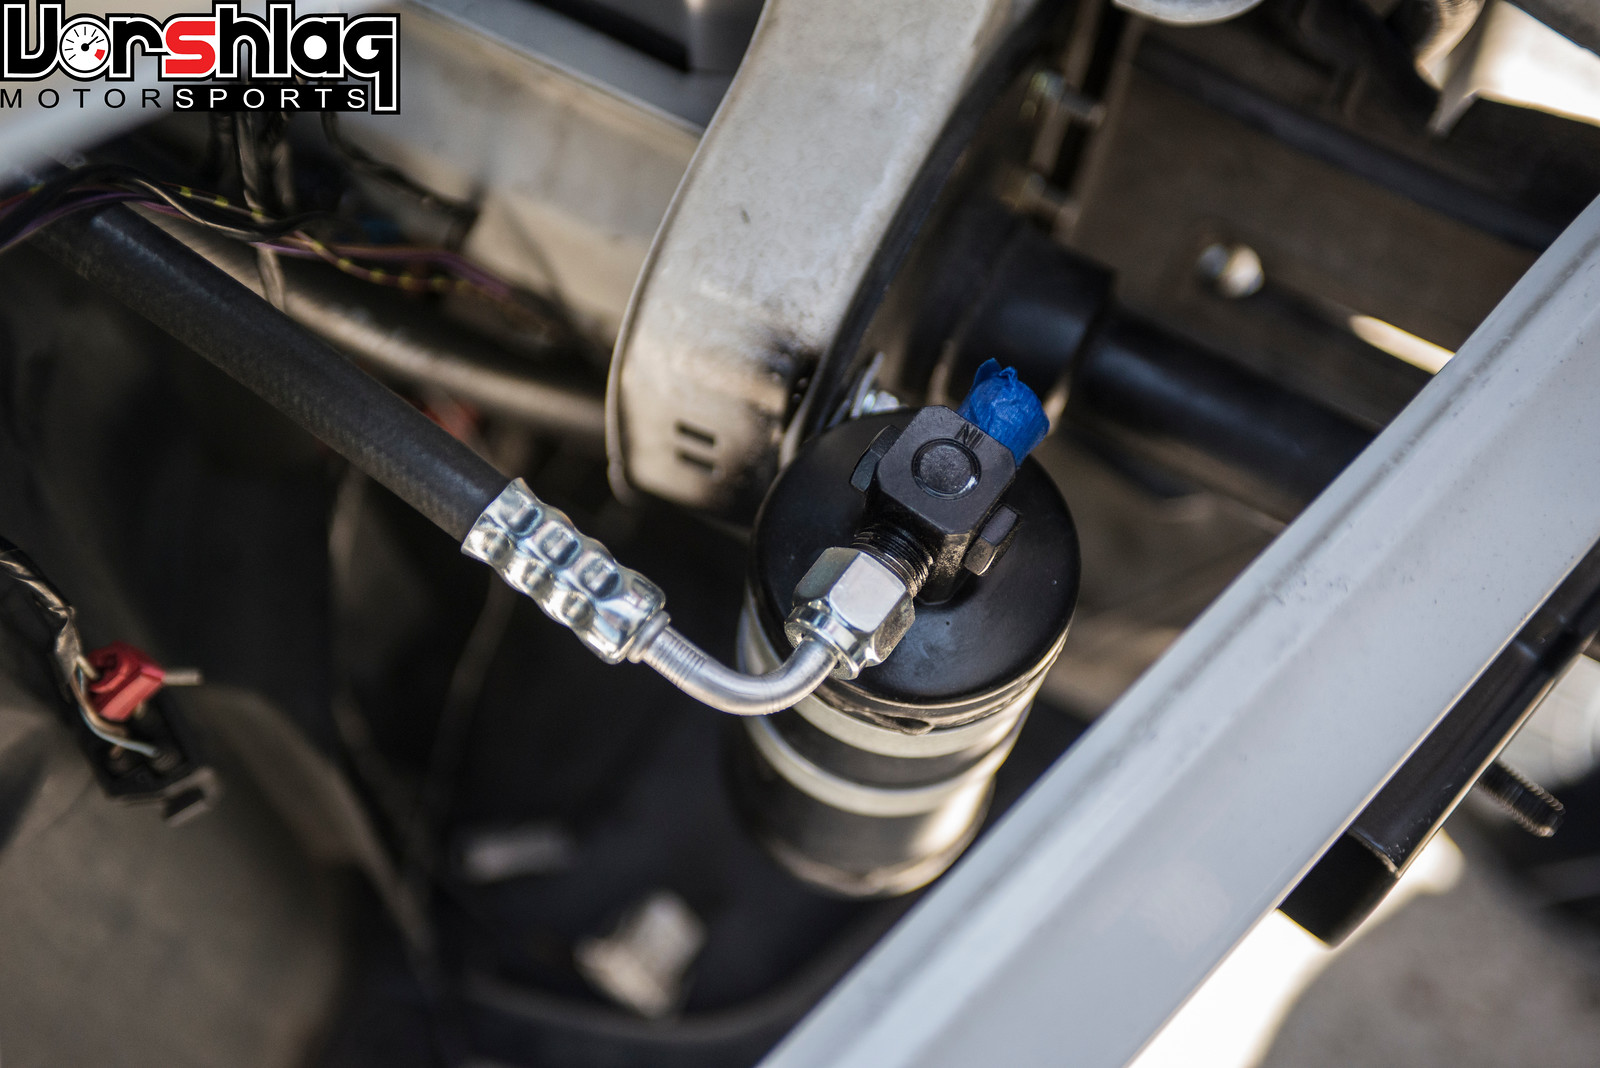 _DSC7747 X3 vorshlag announcement thread for all ls1 swap development ls1 e36 wiring harness how to at webbmarketing.co